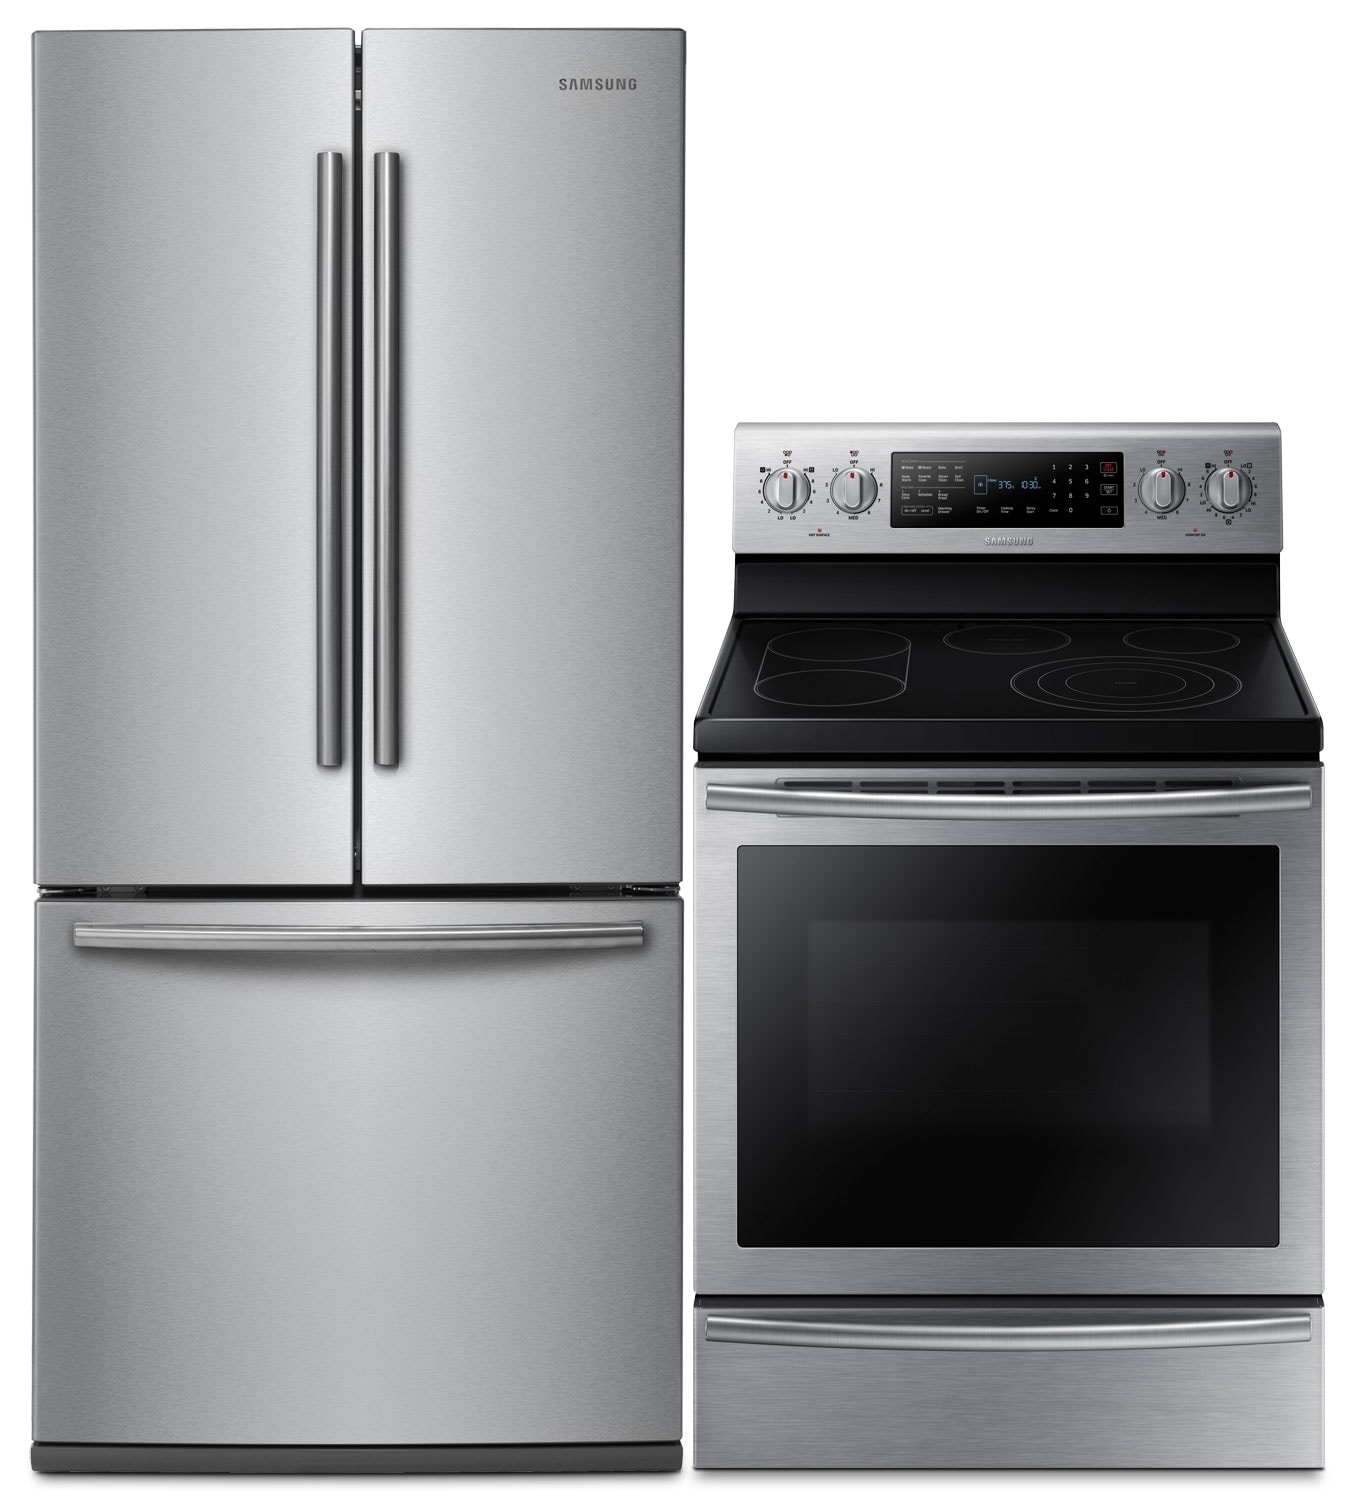 Samsung 22 Cu. Ft. Refrigerator and 5.9 Cu. Ft. Electric Convection Range – Stainless Steel